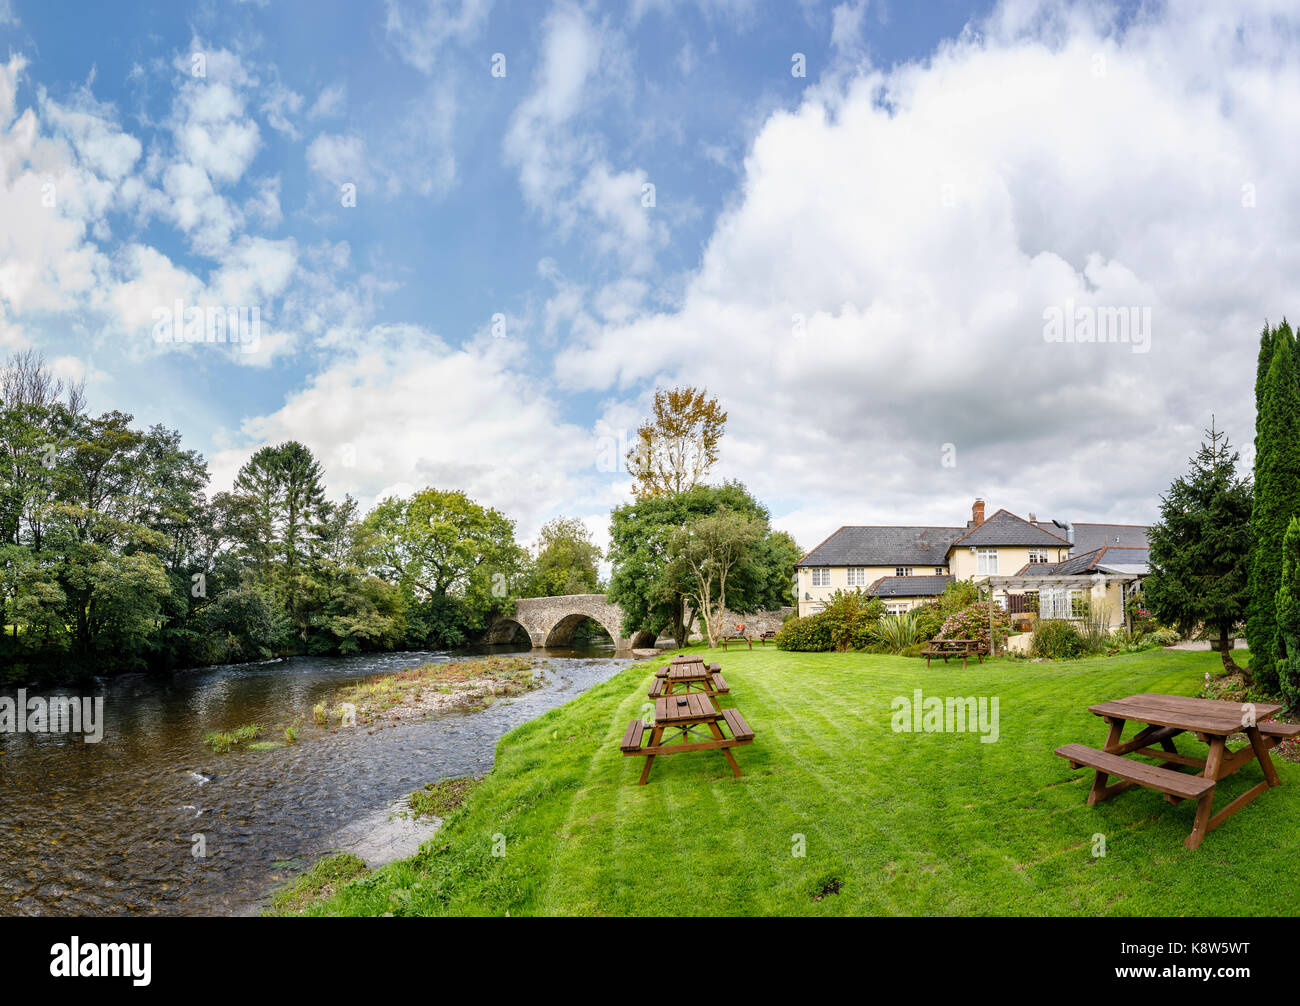 Bridge over the River Exe and the Anchor Inn, Exebridge, a village on the Devon and Somerset border at the confluence - Stock Image